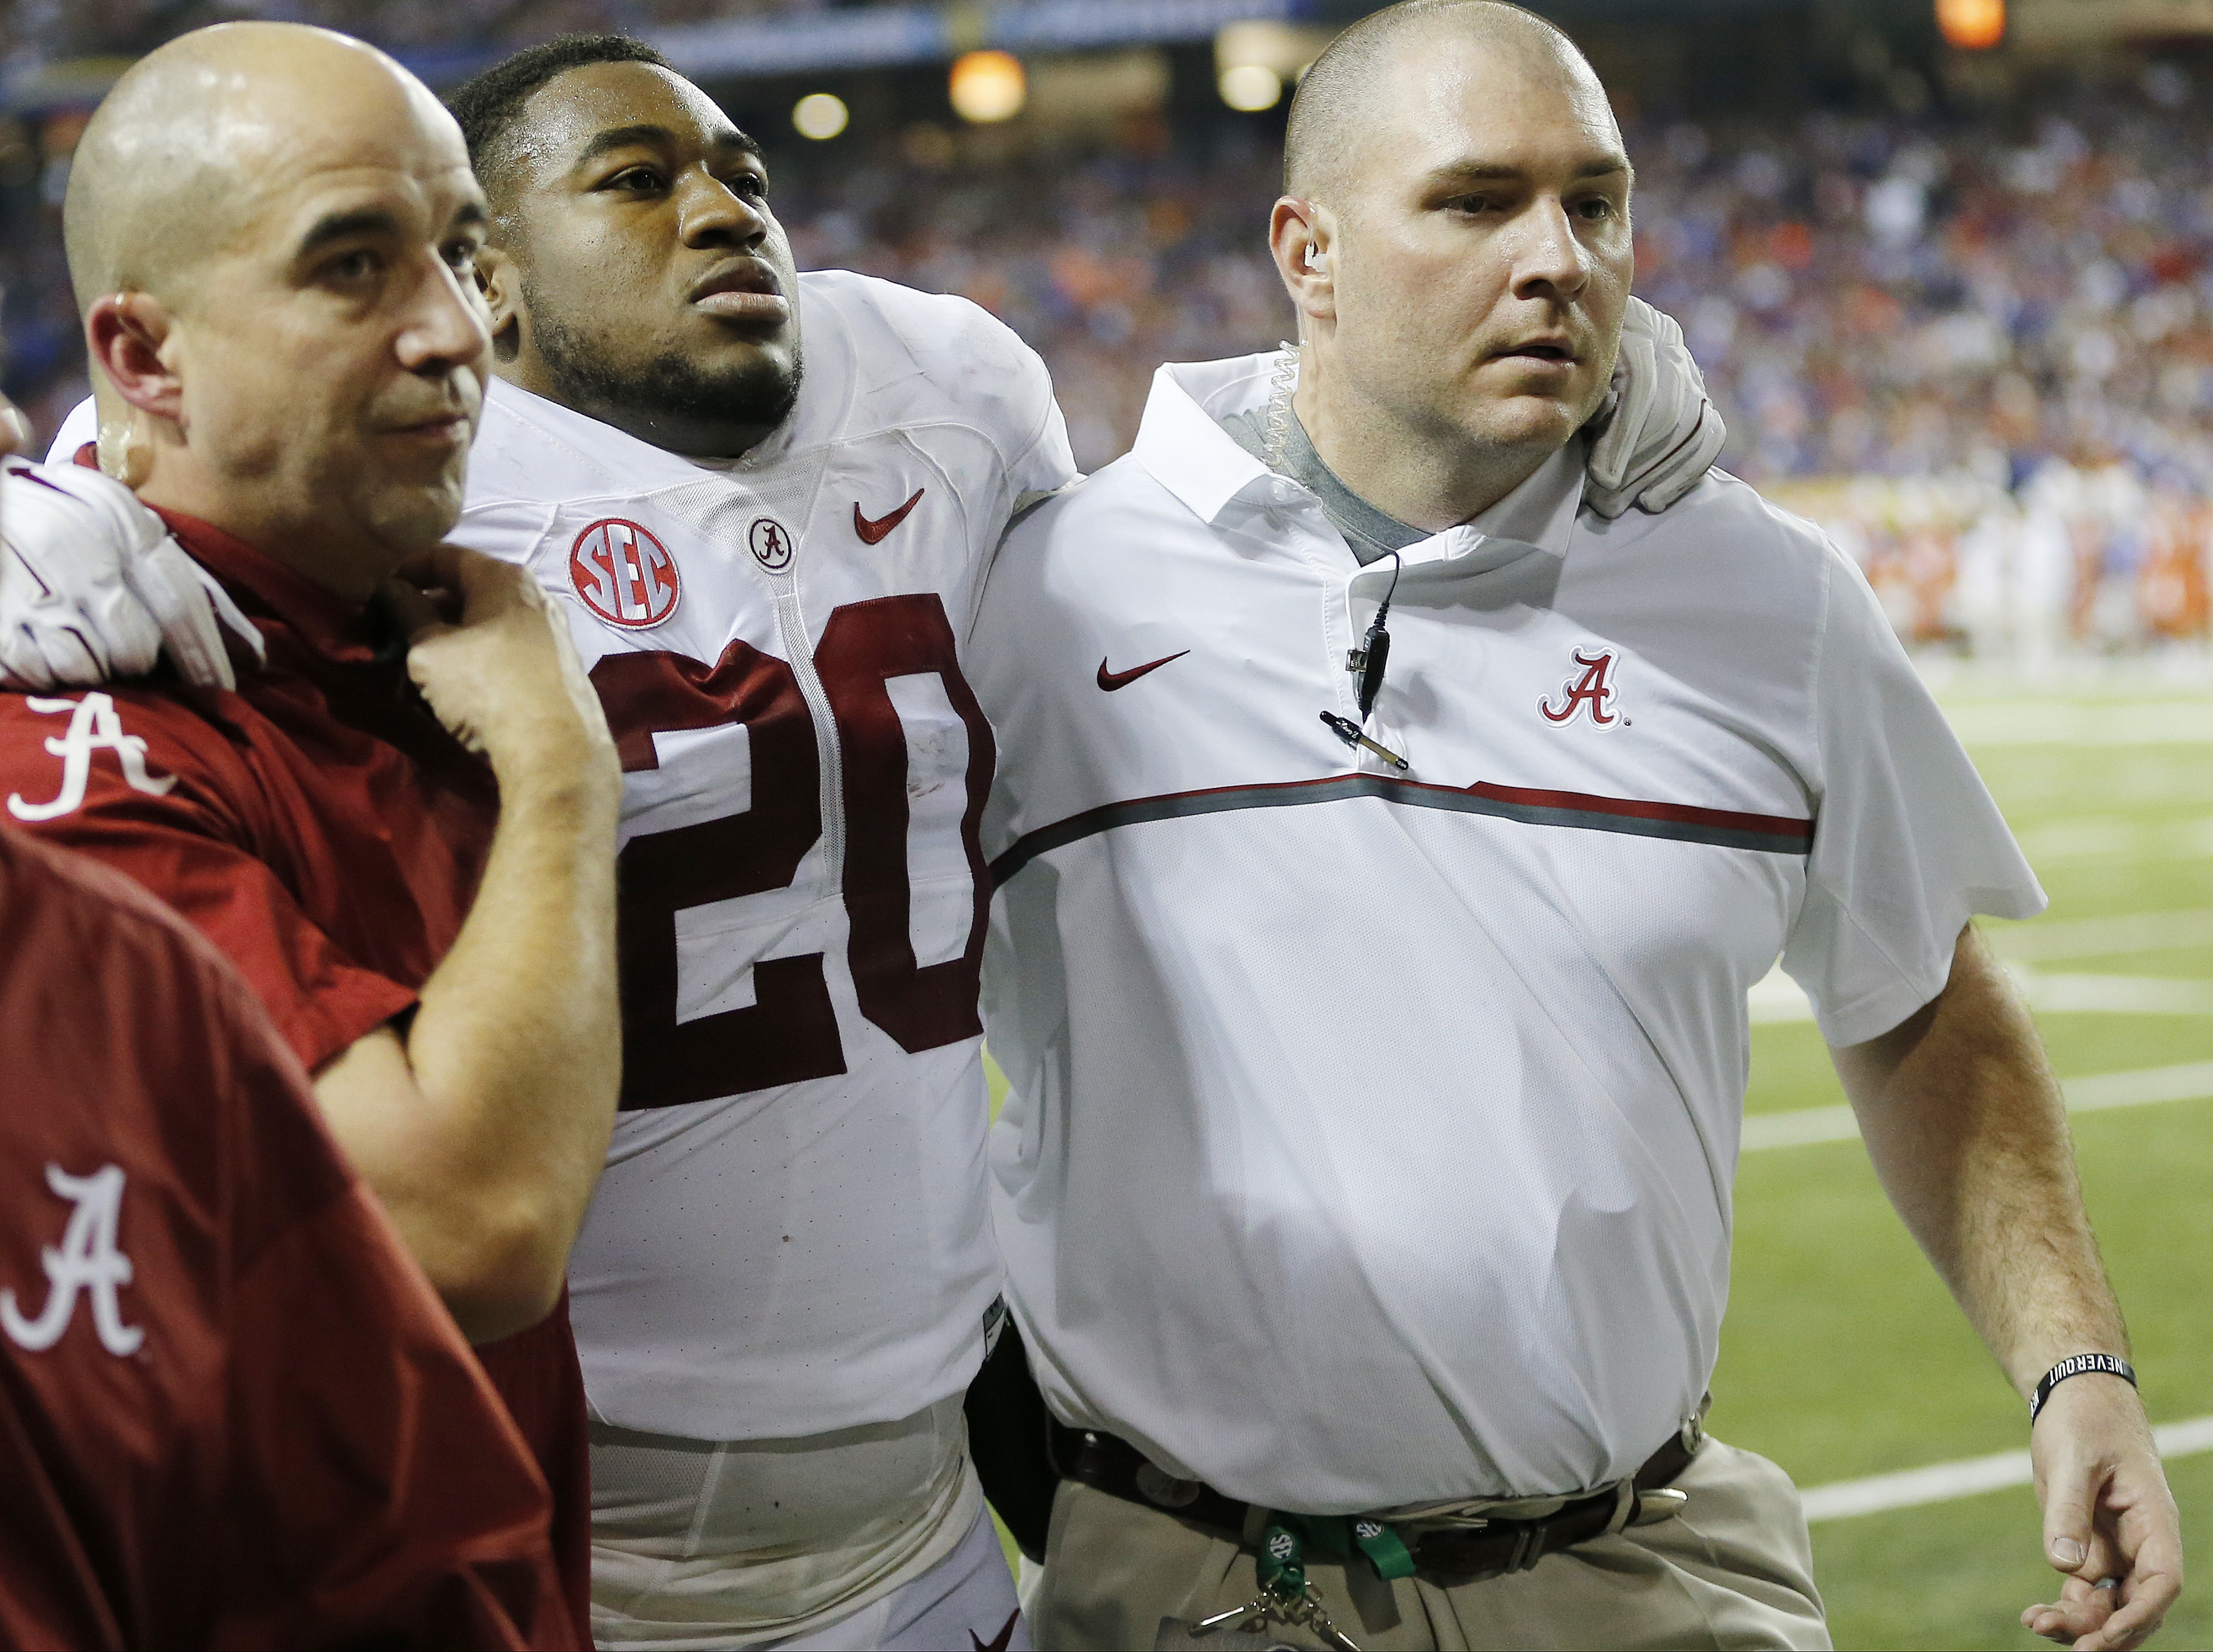 Alabama linebacker Shaun Dion Hamilton (20) is helped off the field due to injury against Florida during the second half of the Southeastern Conference championship NCAA college football game, Saturday, Dec. 3, 2016, in Atlanta.(AP Photo/John Bazemore)